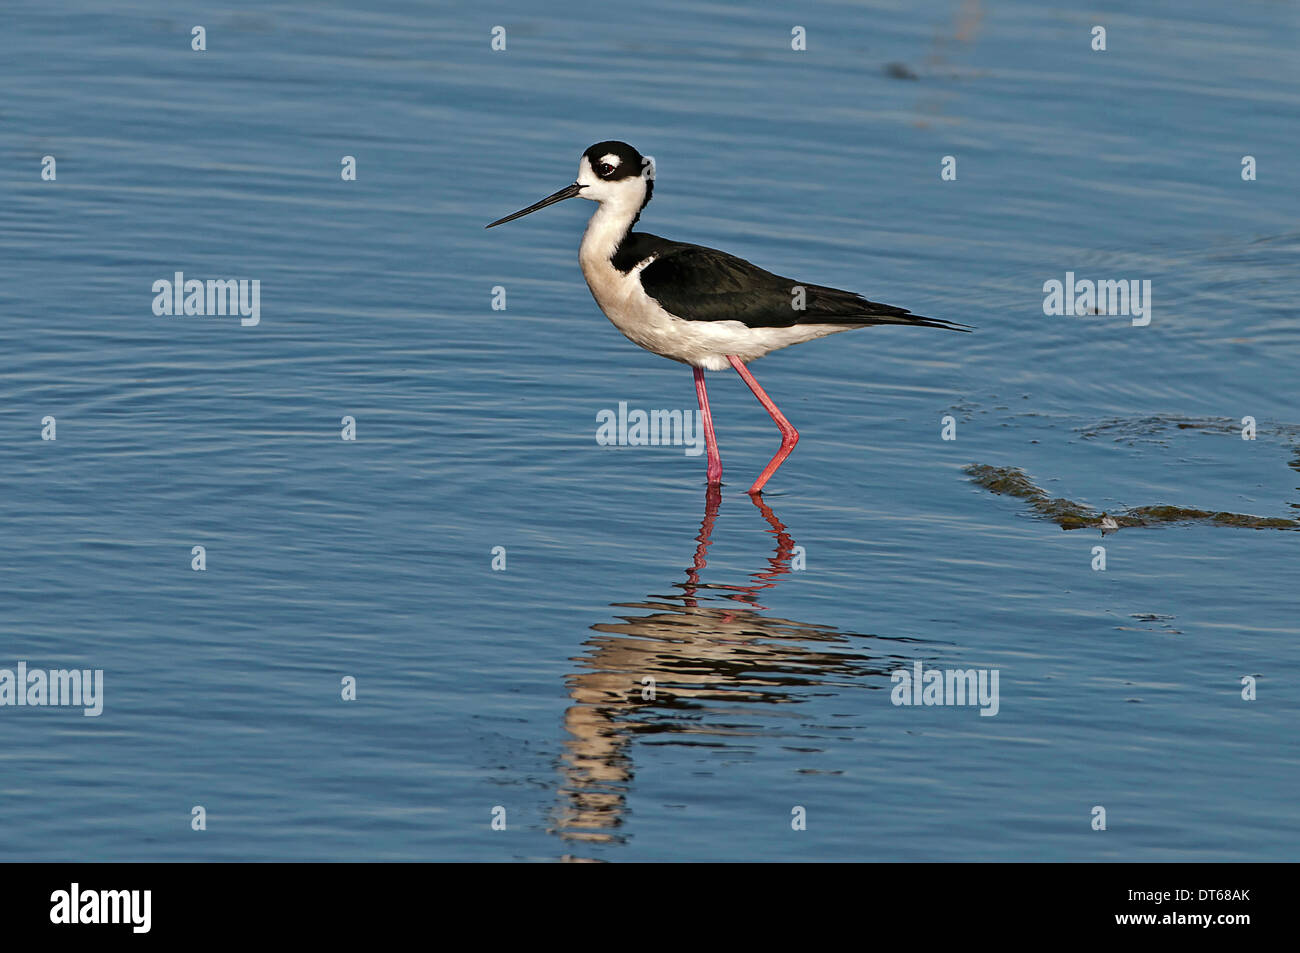 Canada, Alberta, Tyrrell Lake, Black-necked Stilt bird, Himantopus mexicanus, with reflection in the water. - Stock Image